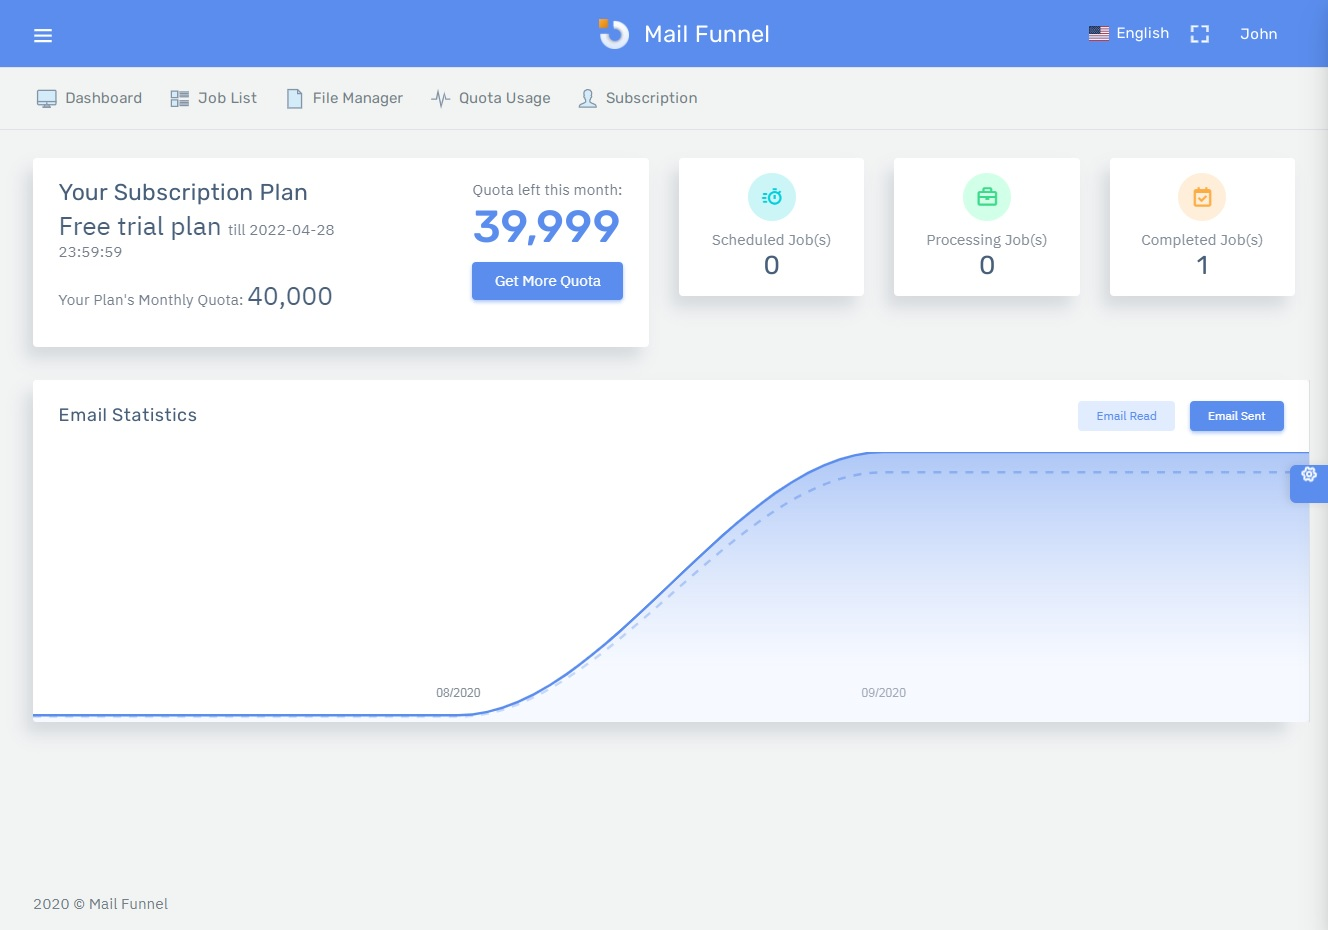 Mail Funnel Dashboard 系統首頁